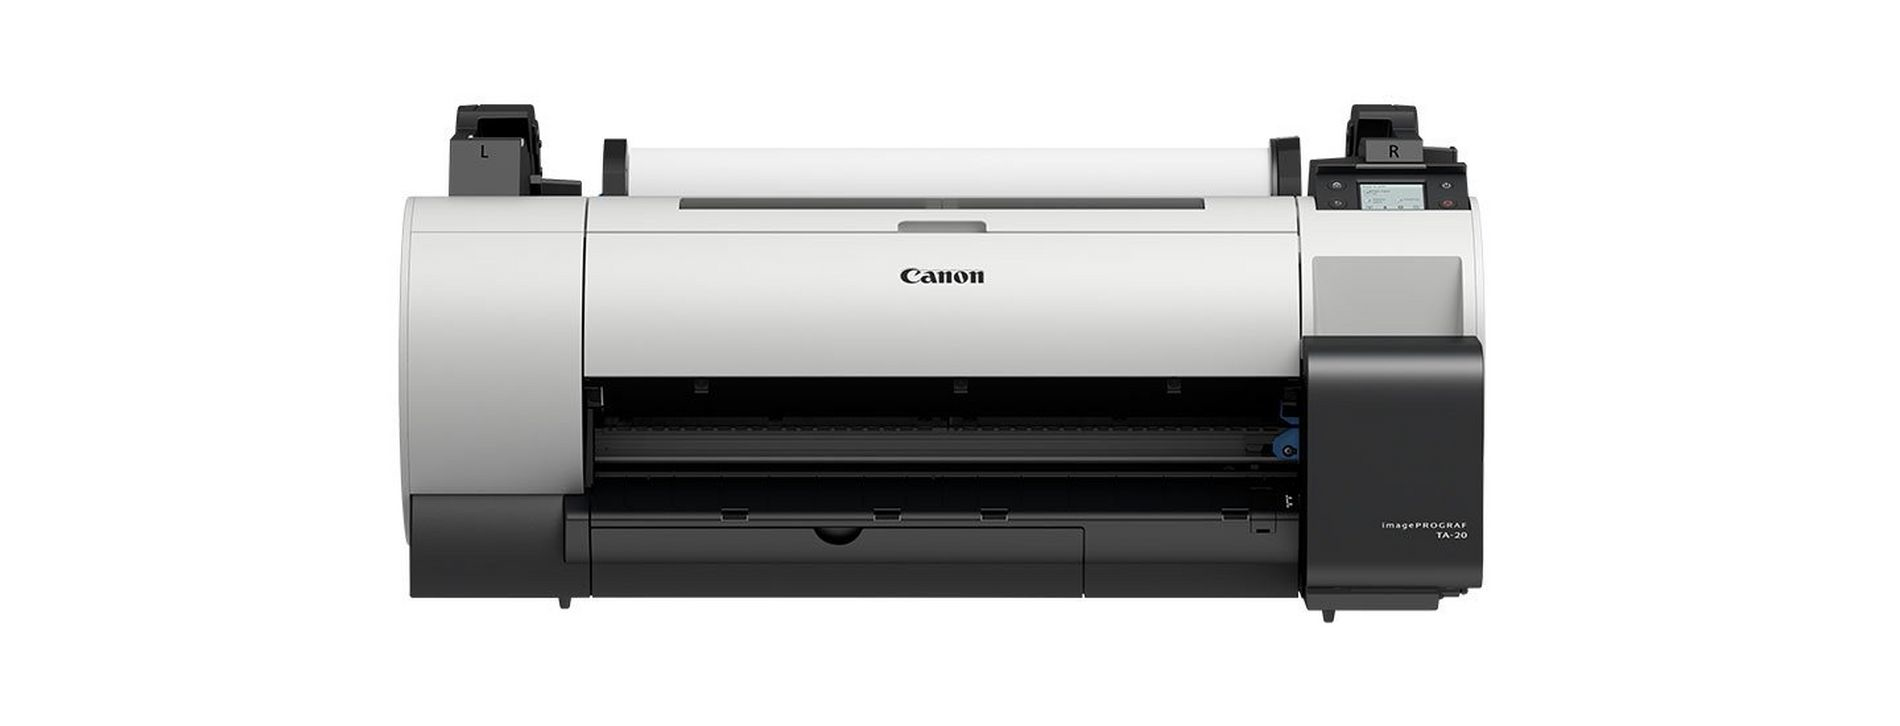 Canon imagePROGRAF TA-20 large format printer Inkjet Colour 2400 x 1200 DPI A1 594 x 841 mm Ethernet LAN Wi-Fi